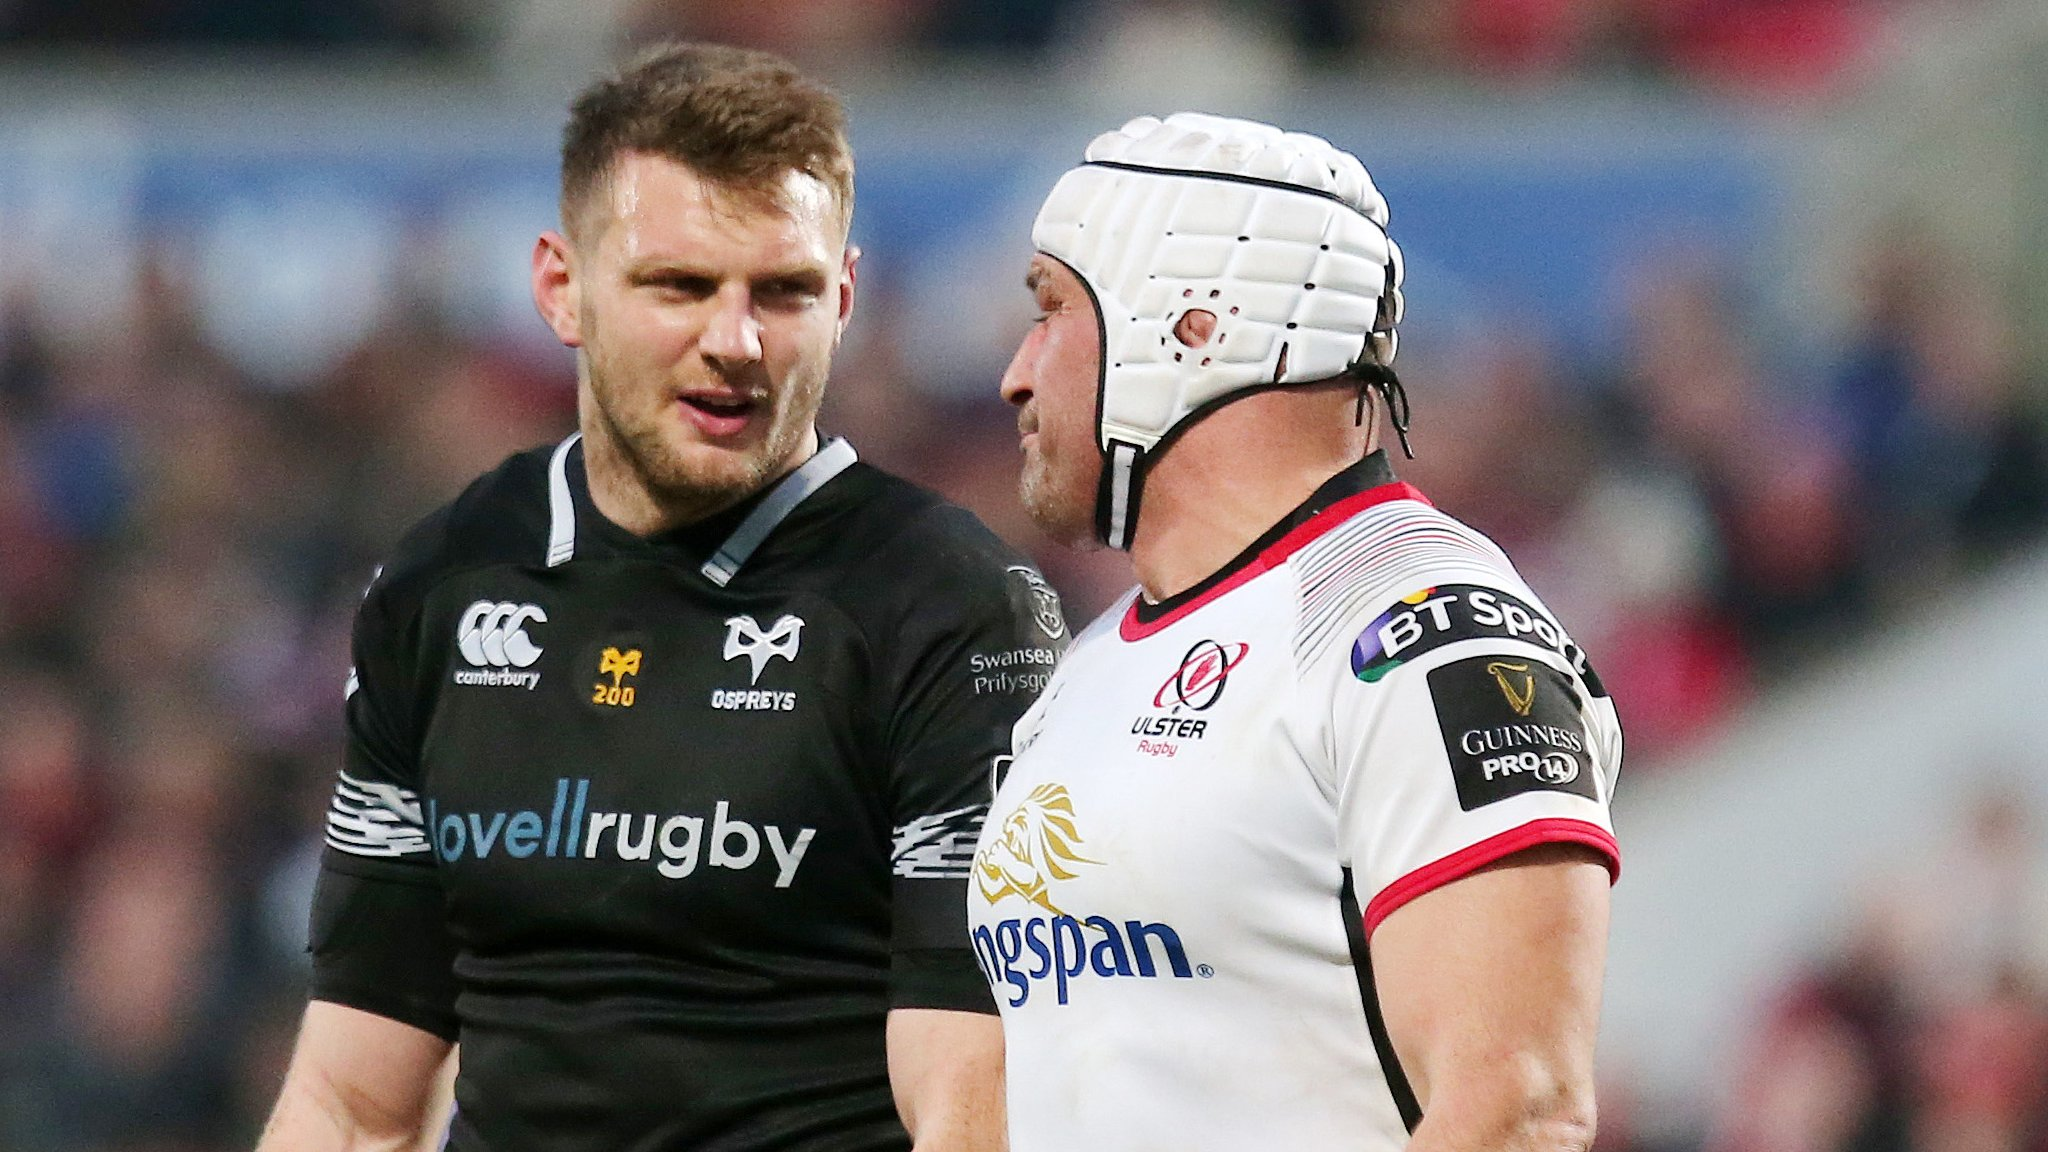 Ulster lose Best for Champions Cup play-off with Ospreys